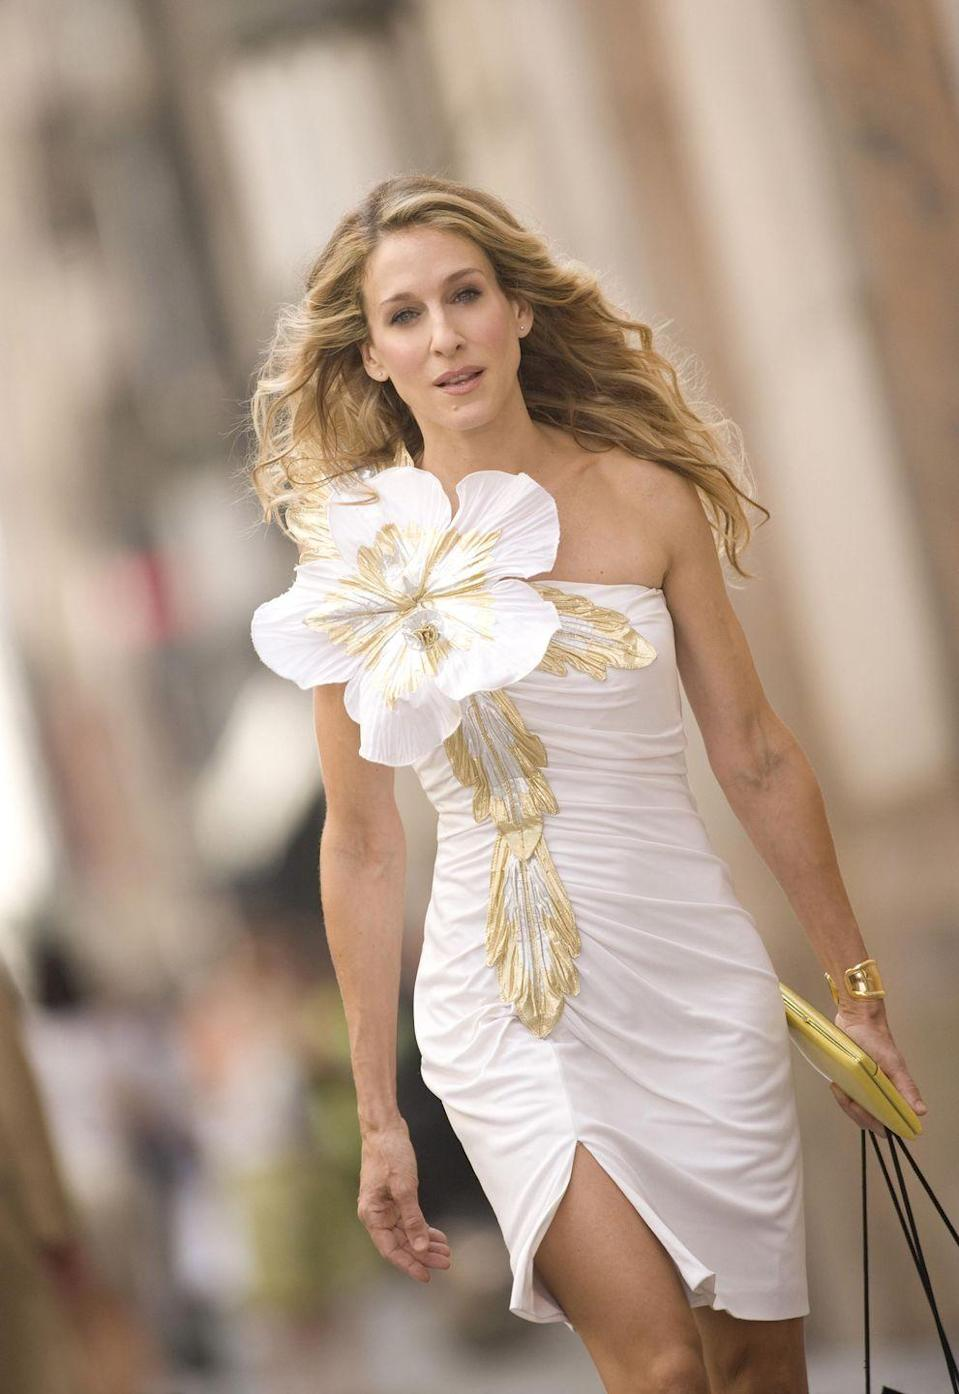 <p>For the opening credits of the first Sex and the City movie, Carrie swapped her famous pink tutu for a white Eugene Alexander dress and a gold Elsa Peretti bone cuff from Tiffany & Co. </p><p>In a series, and subsequently a film, where New York is arguably one of the most important characters, putting Carrie in one of the city's most venerable jeweller's iconic designs was a stroke of styling genius. </p>